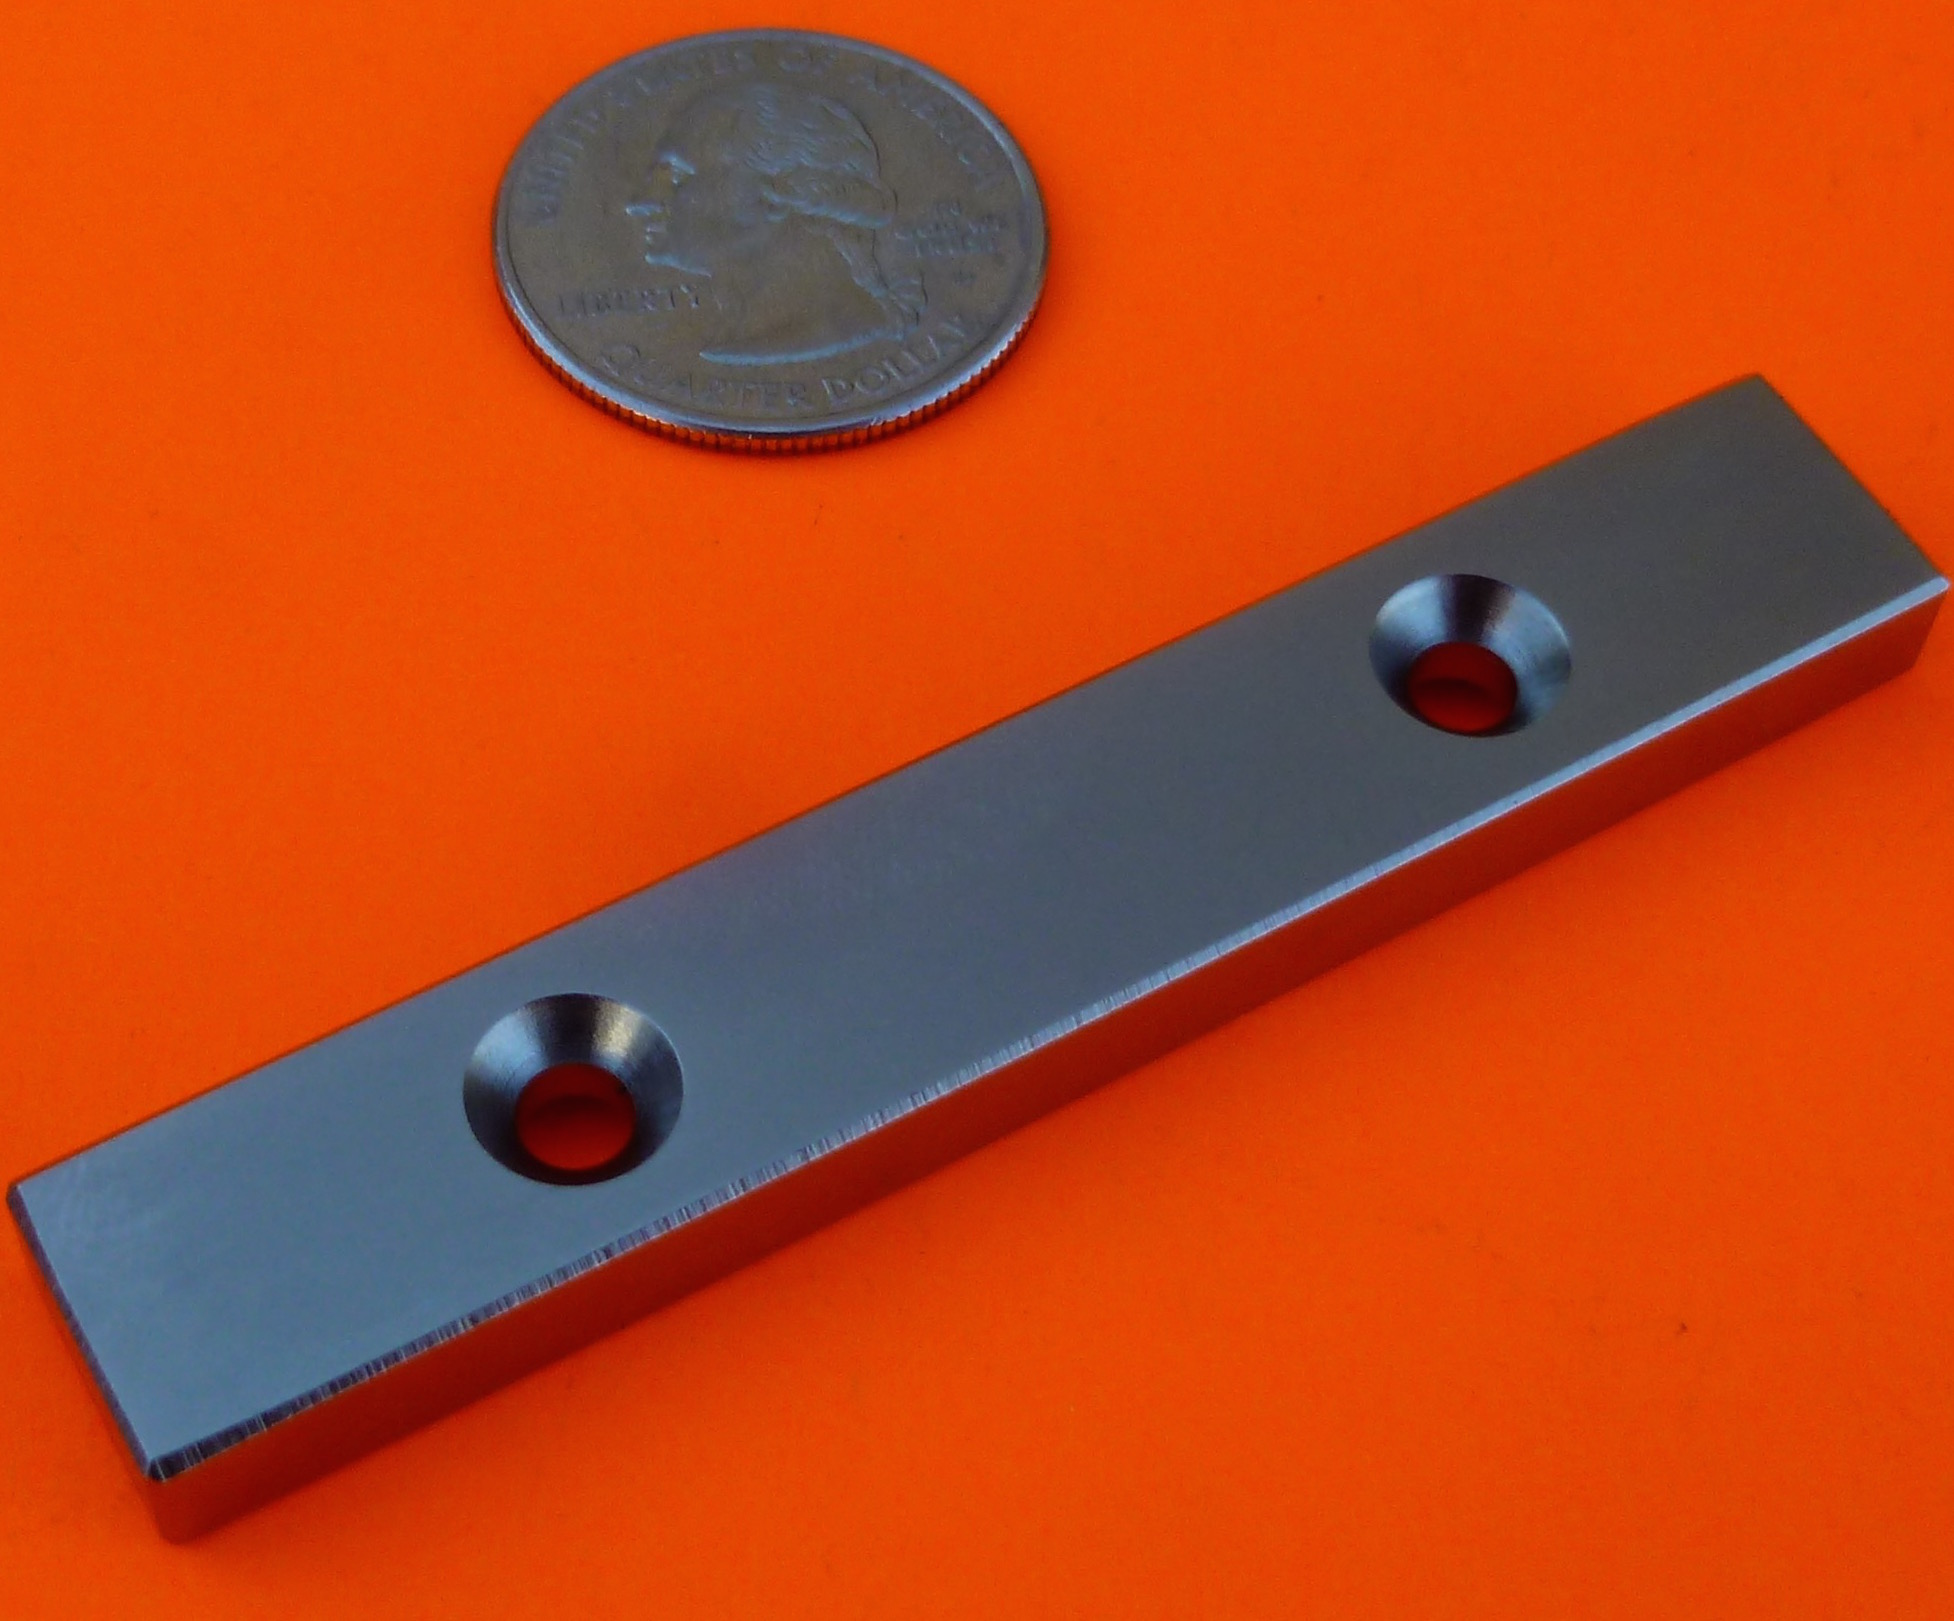 N48 Neodymium Magnets 3 in x 1/2 in x 1/4 in with 2 Countersunk Holes